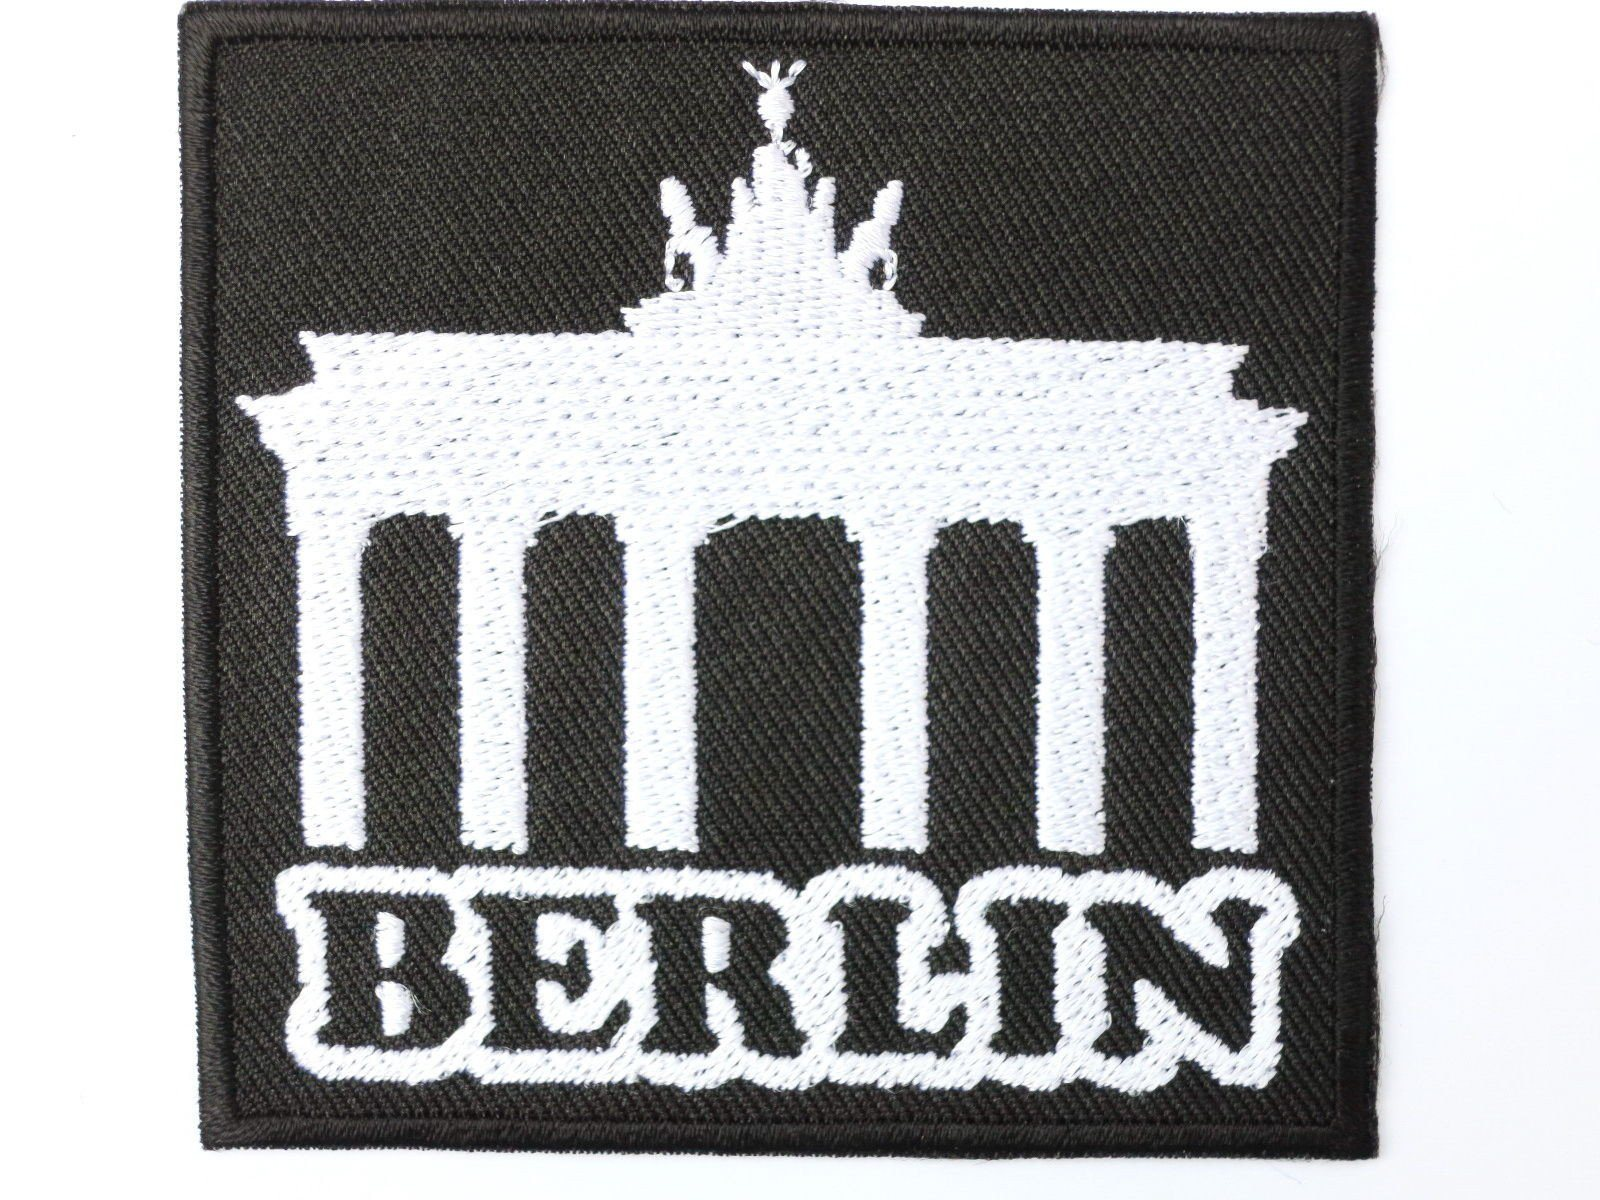 "BERLIN German Germany Wall Iron On Embroidered Patch 2.9""/8.5cm - A Patch E Store"